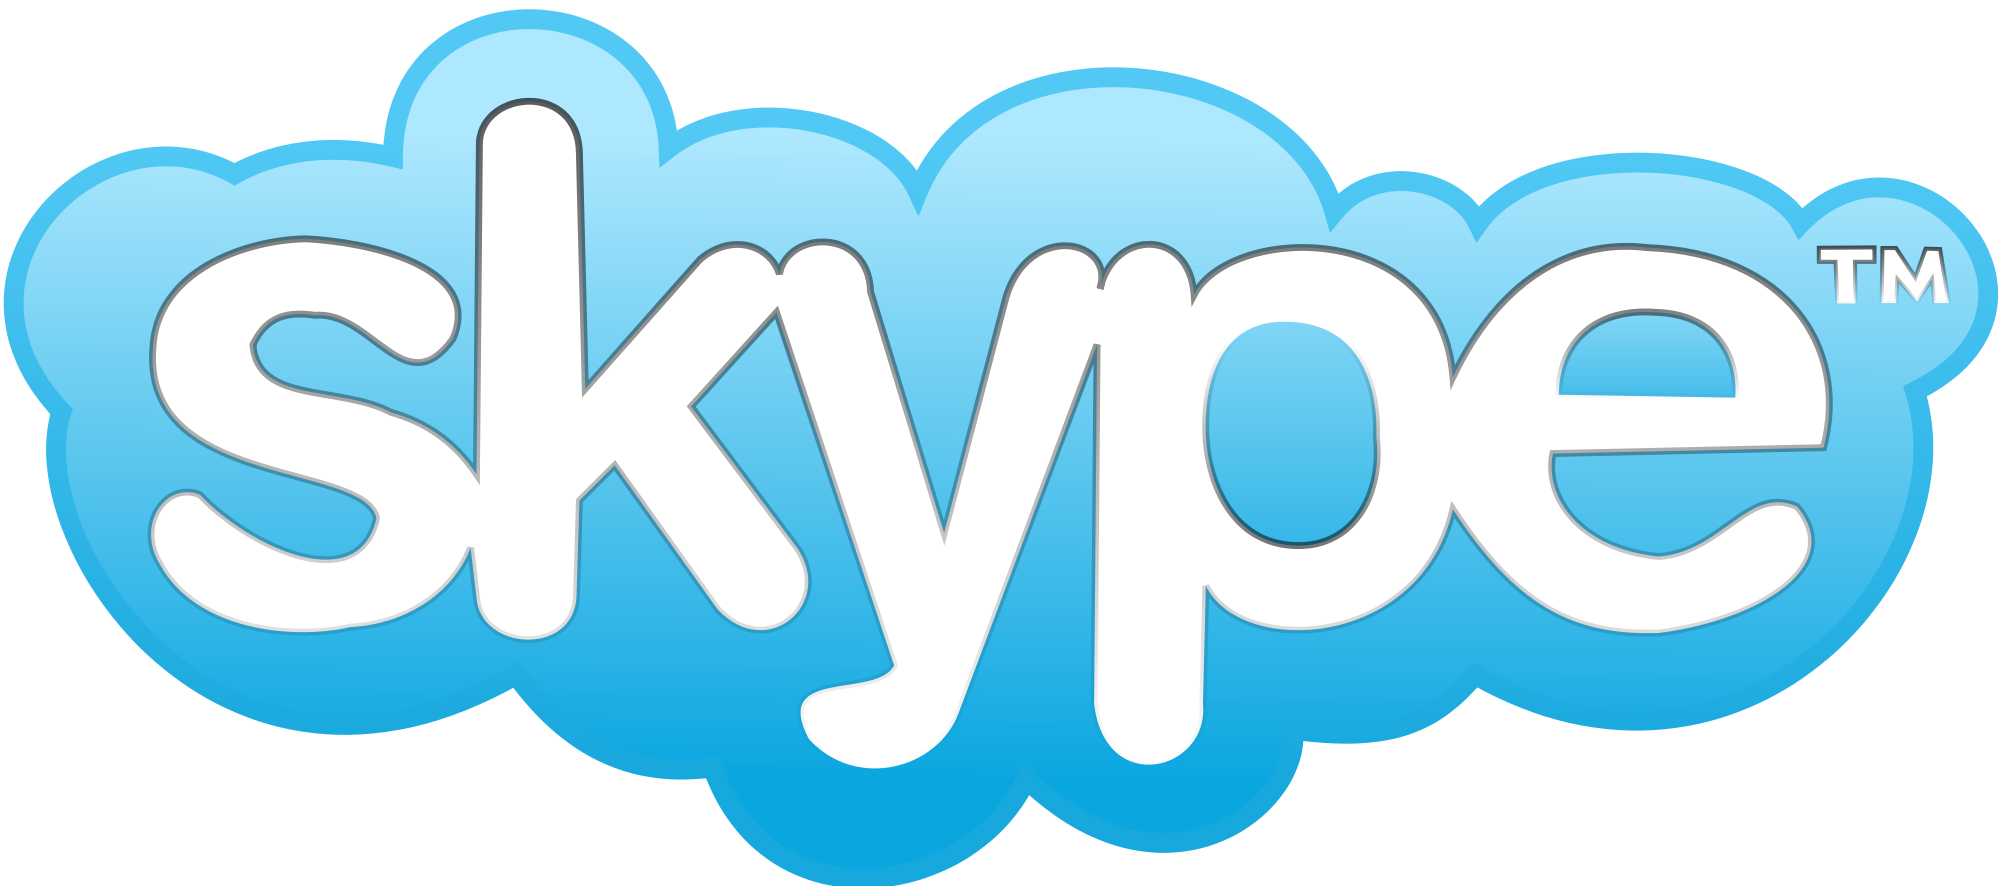 How To Find a Job on Skype (Part 3)